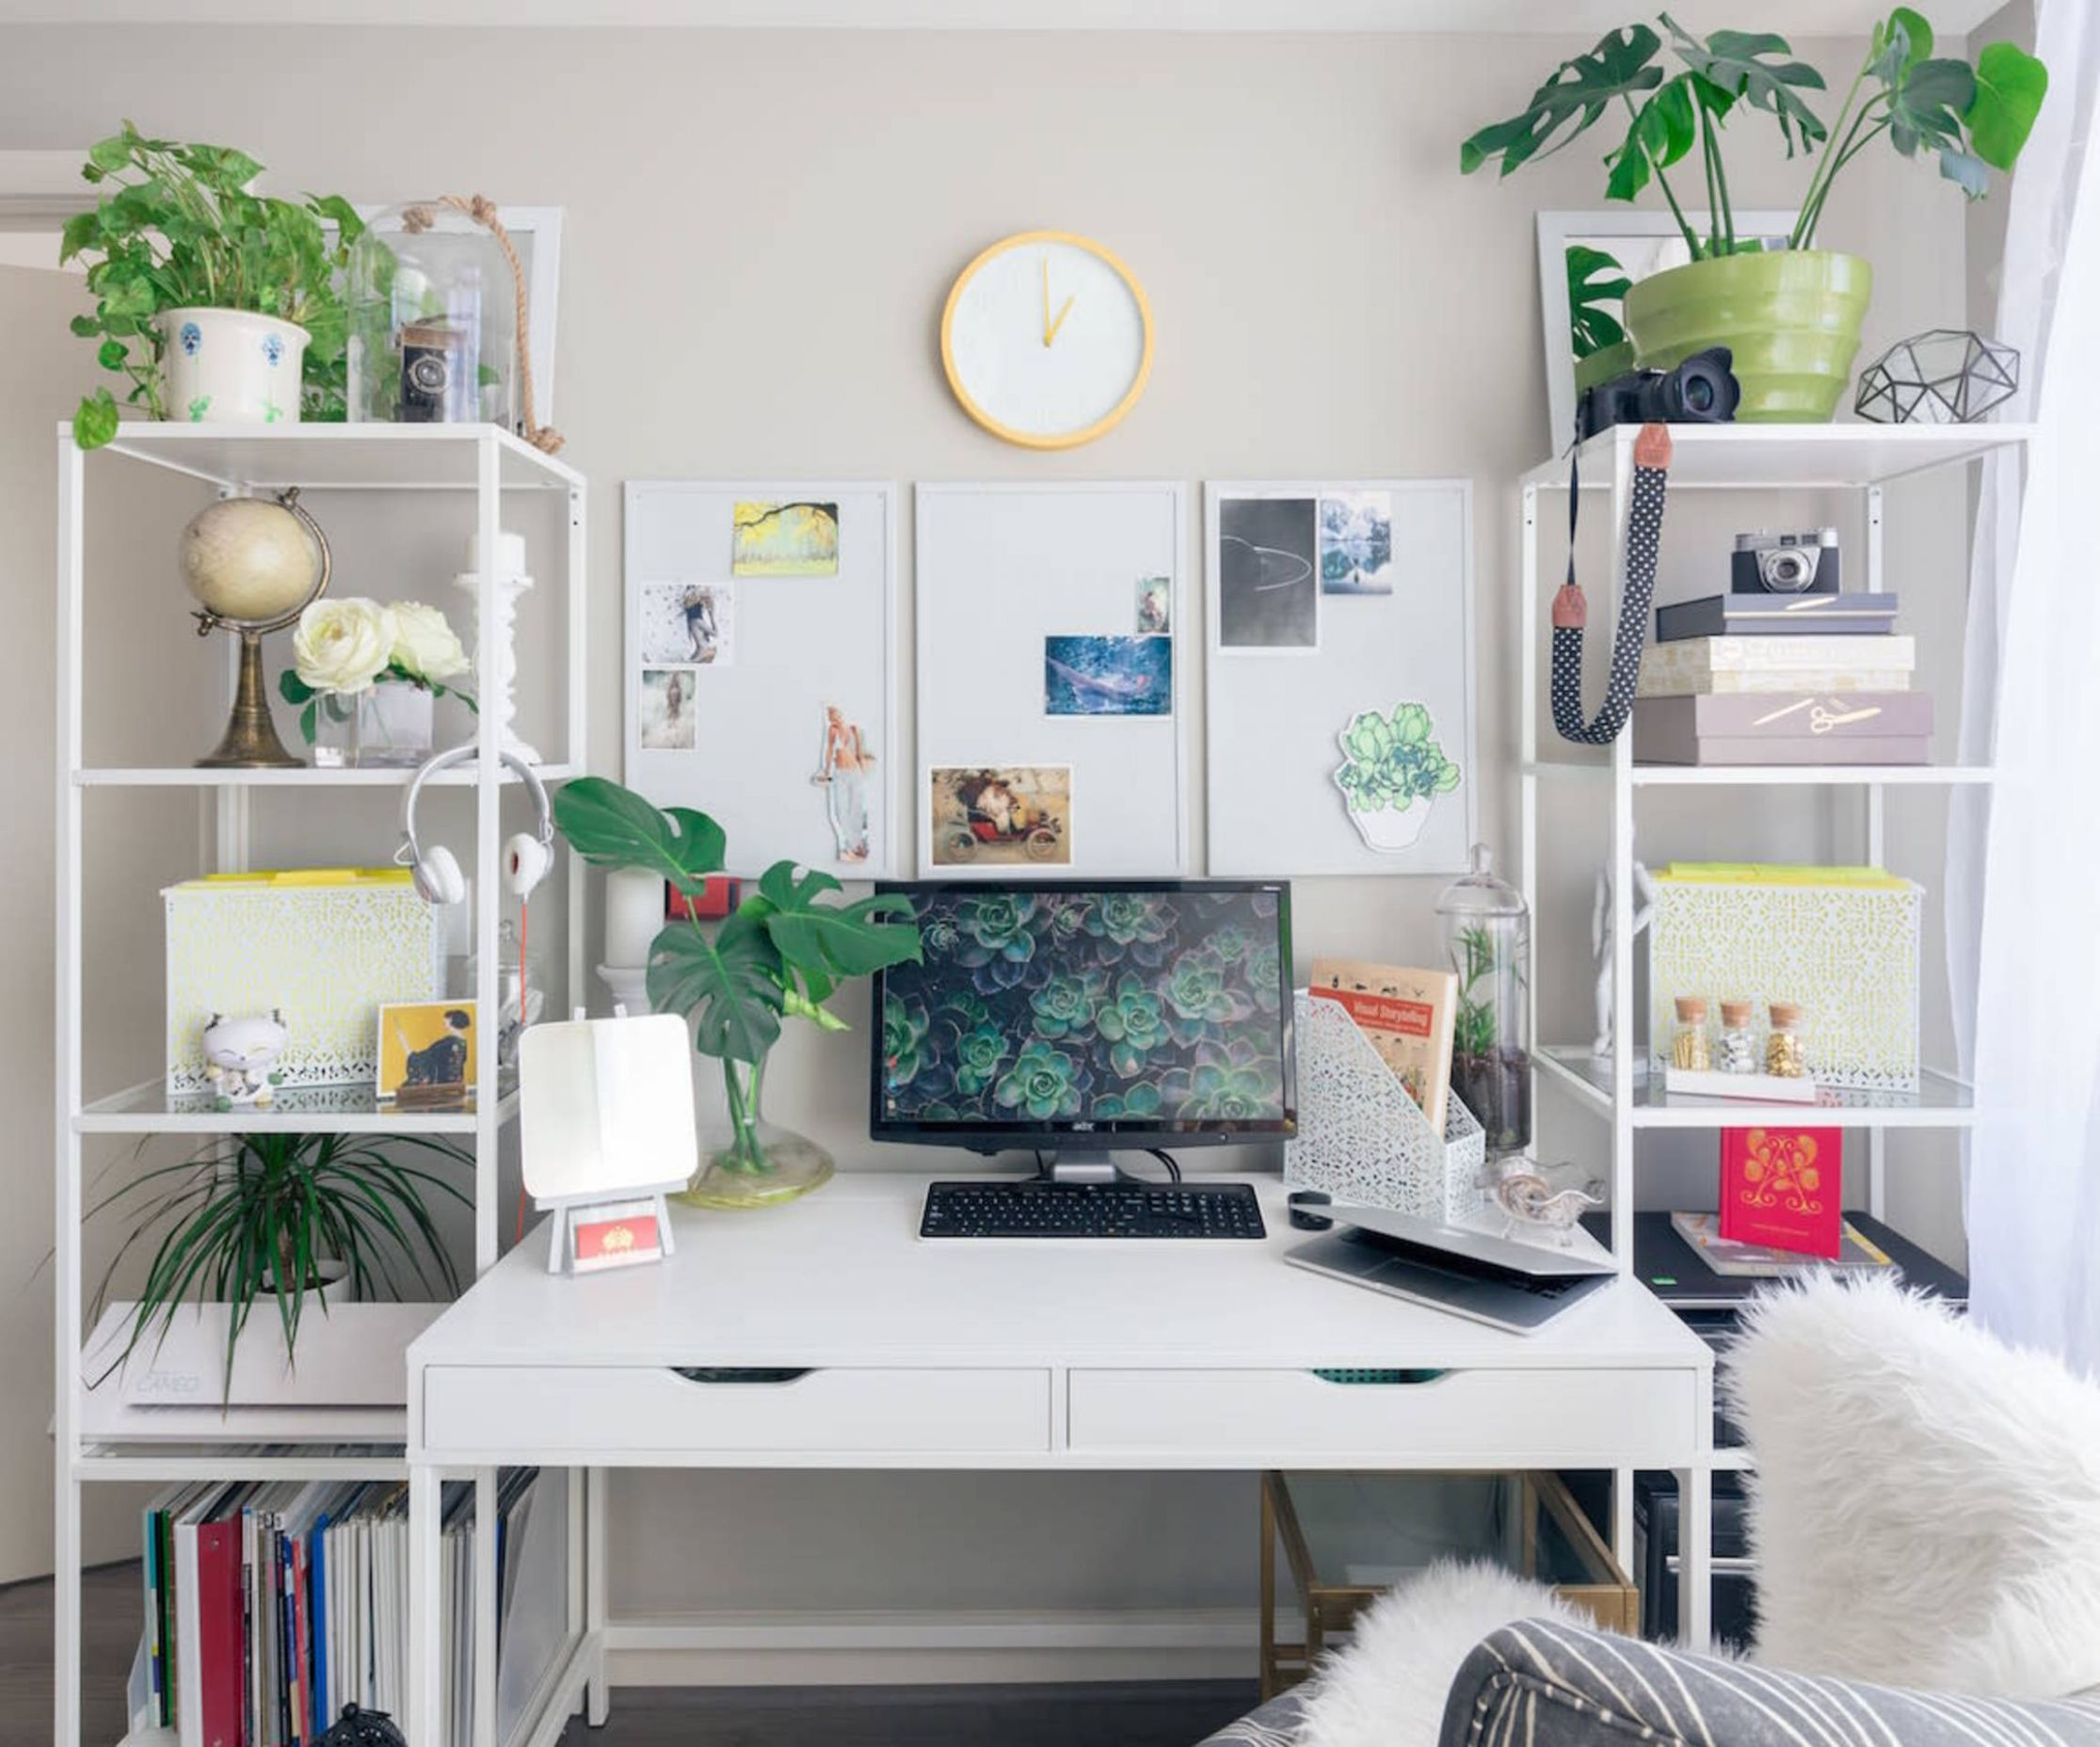 8 Home Office Ideas To Help You Work From Home Like A Boss